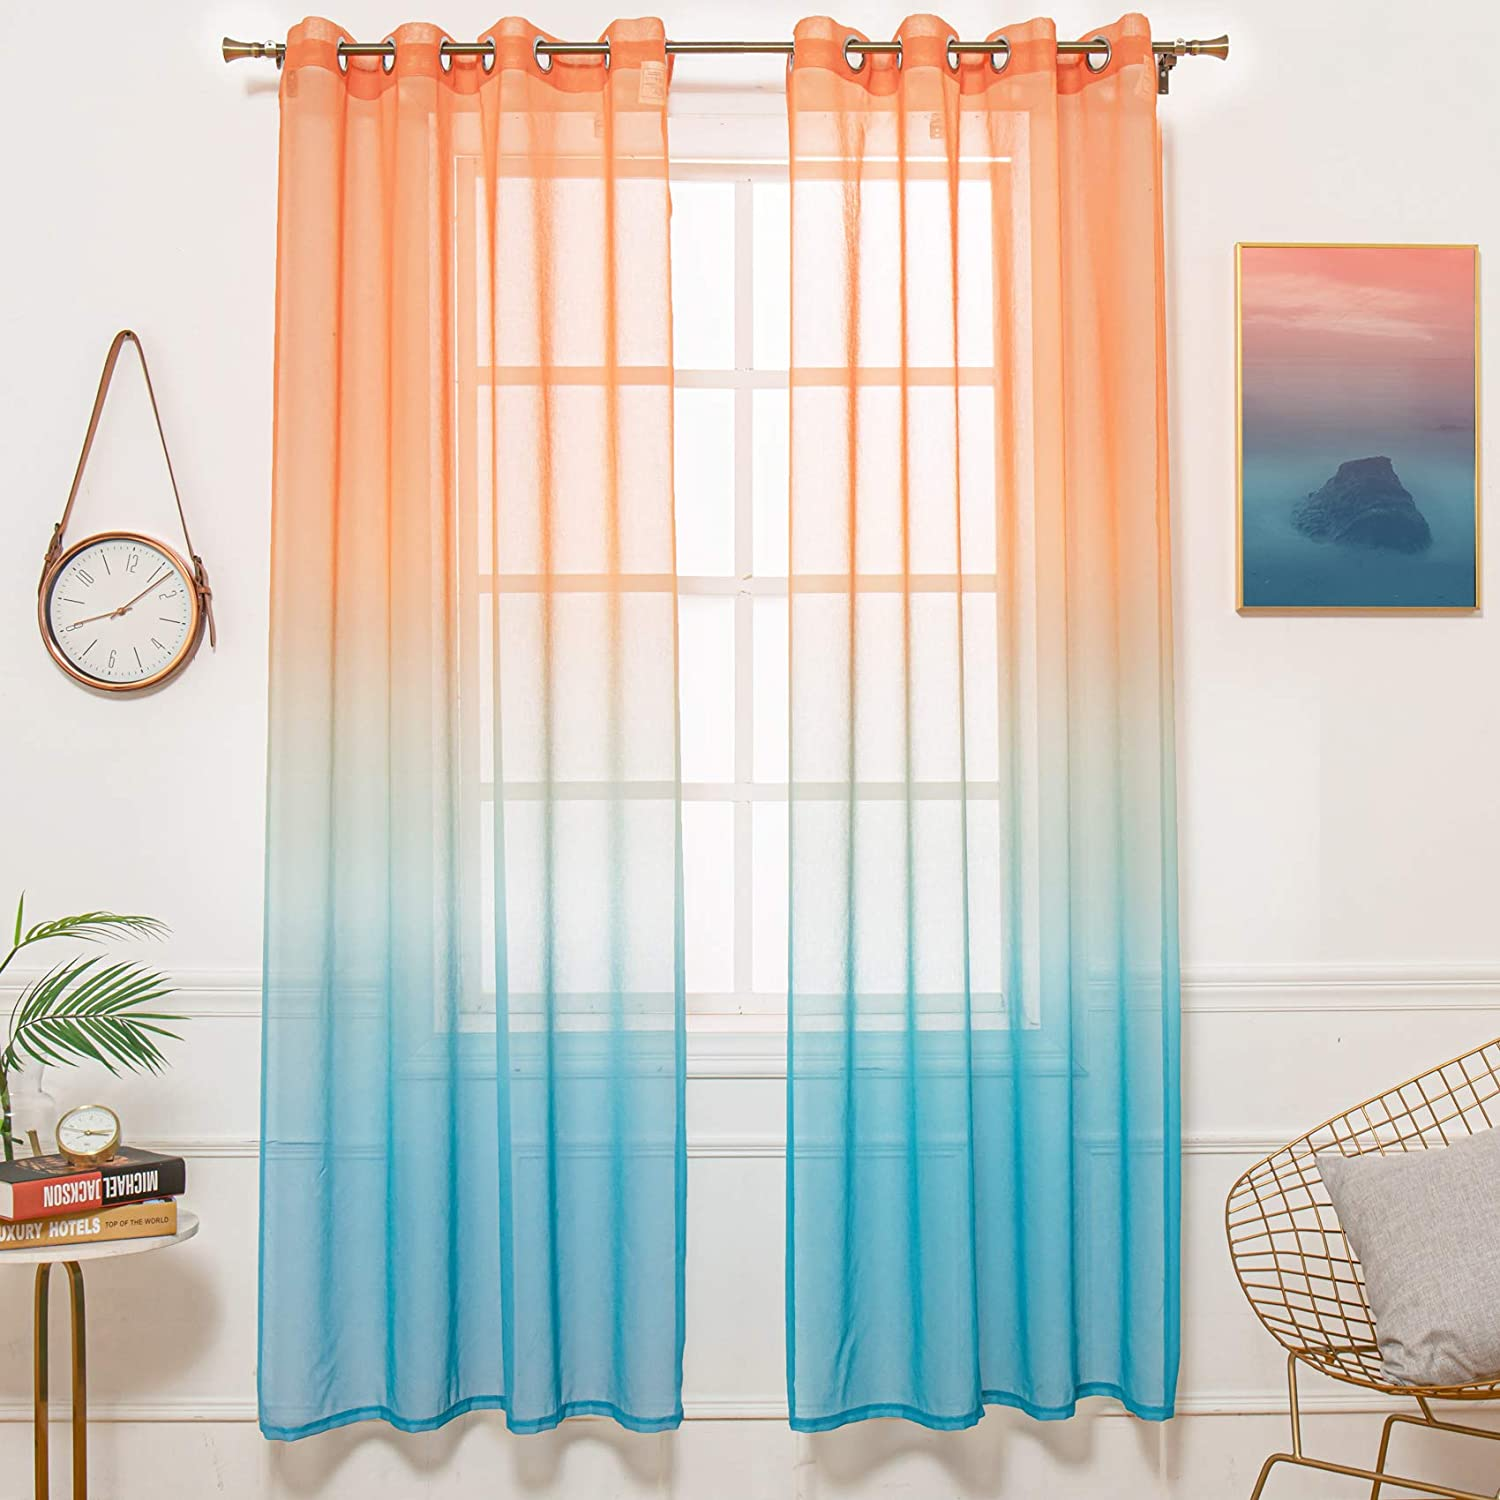 Orange Teal, 52 x 84 STFLY Set of 2 Panels Orange Teal Ombre Sheer Curtains Girls Bedroom 84 Inch Length Voile with Grommet Window Curtain